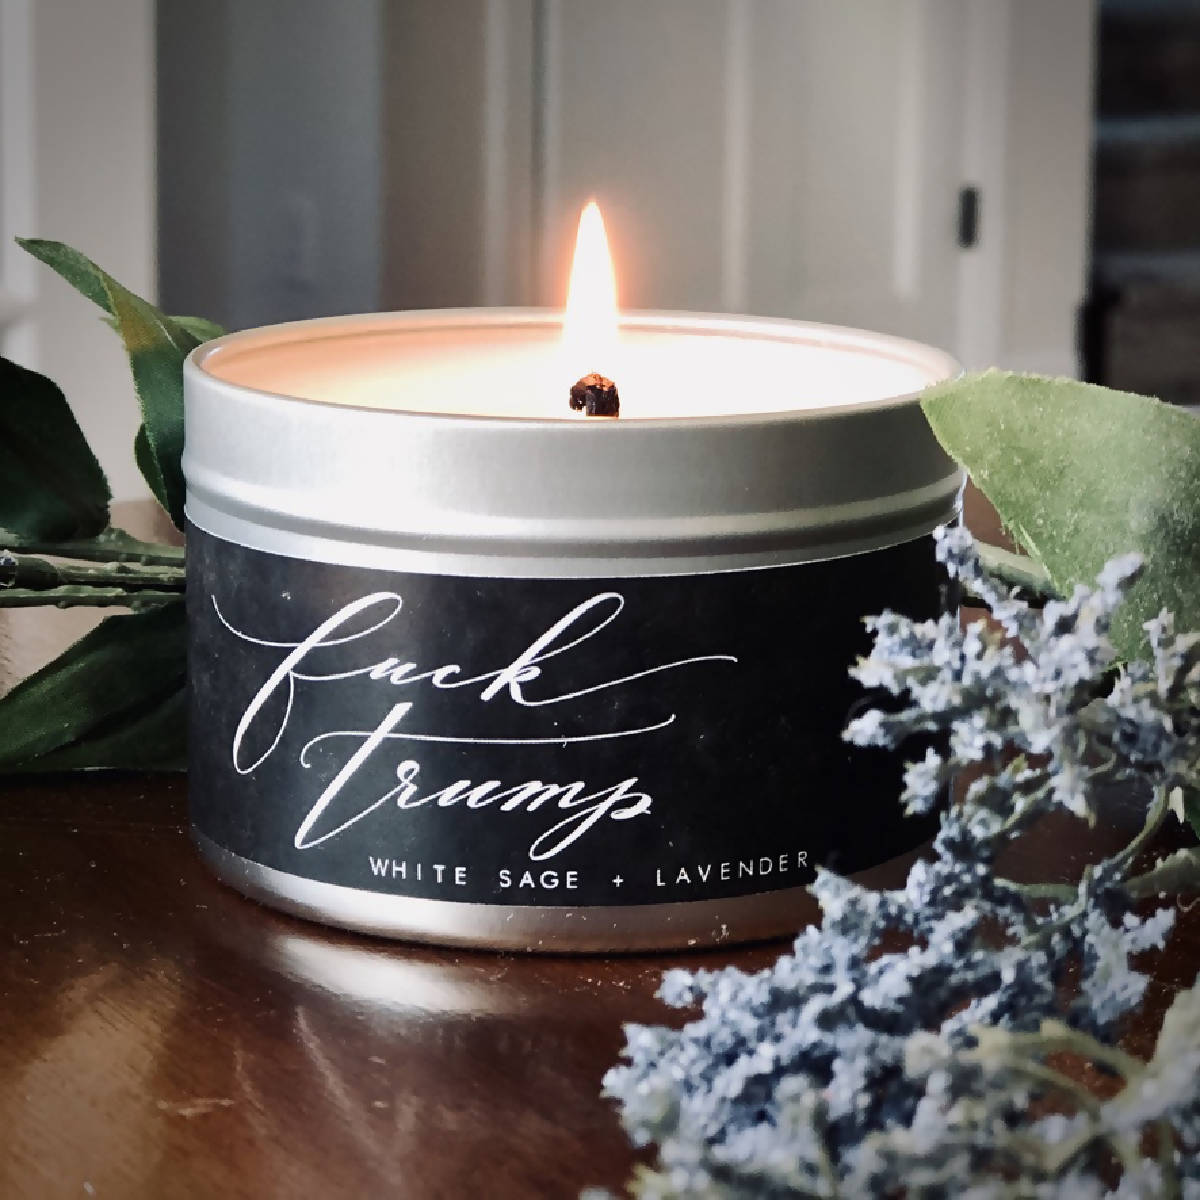 WTF USA Natural Soy Candle Set